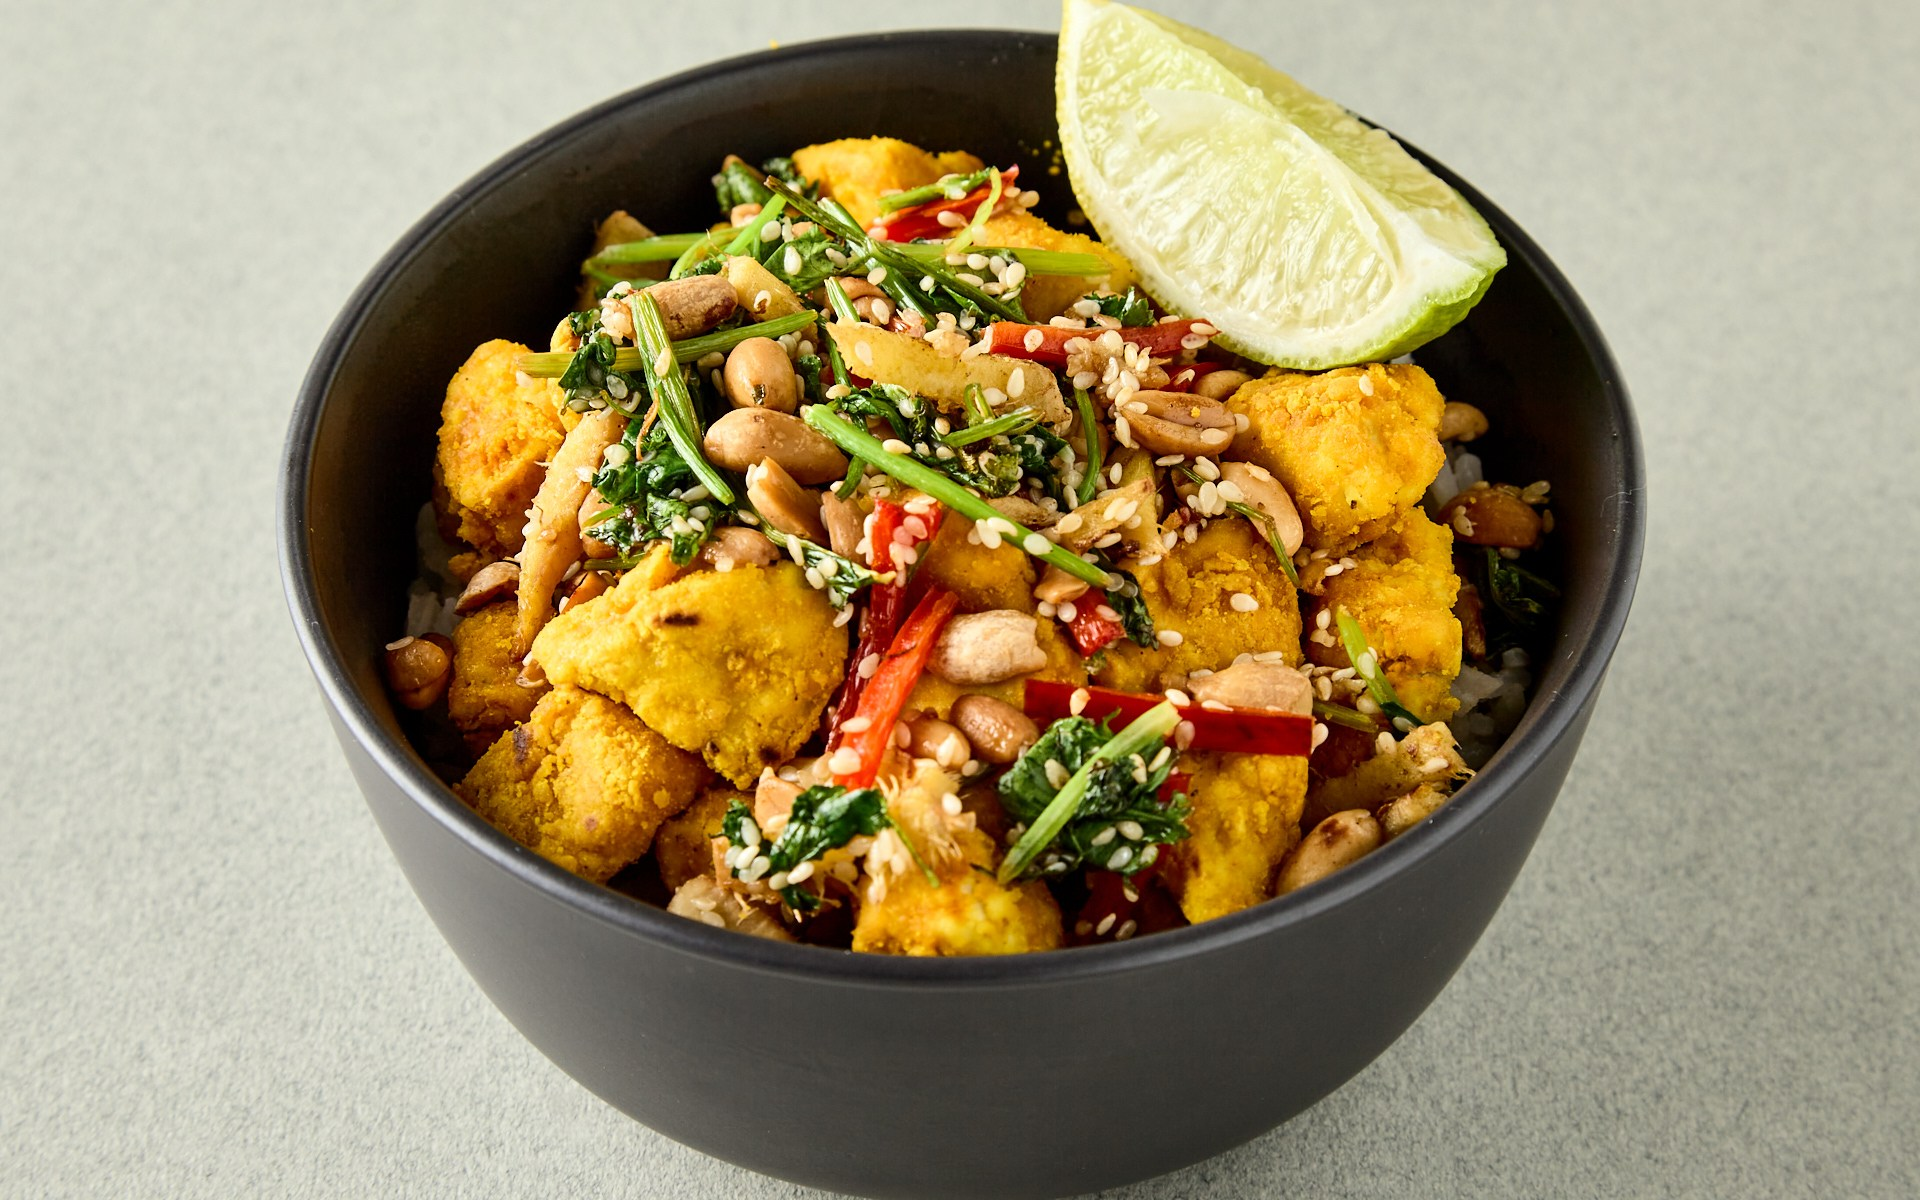 Black bowl containing turmeric tofu, chopped greens and a lime wedge